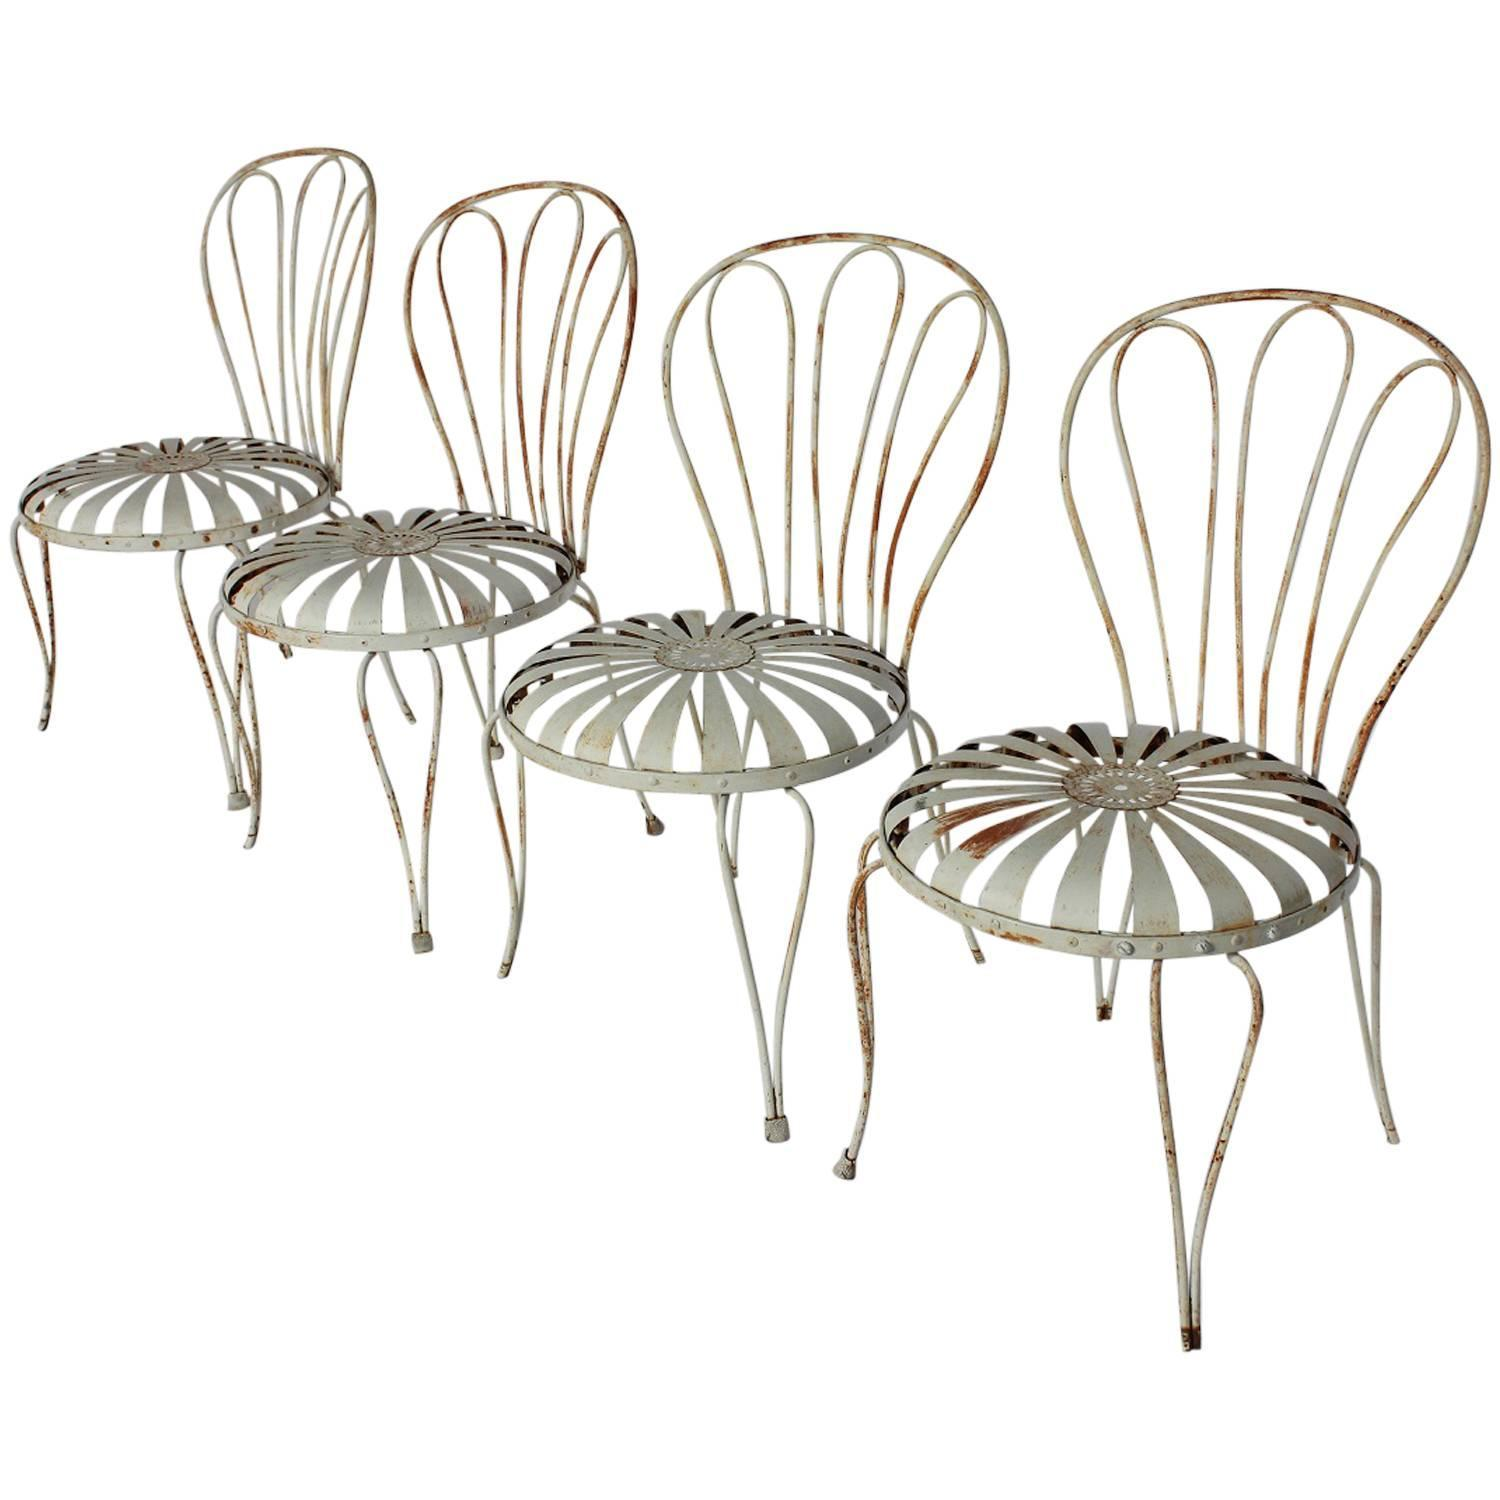 1930s french sunburst garden chairs by francois carre for sale at 1stdibs Vintage metal garden furniture